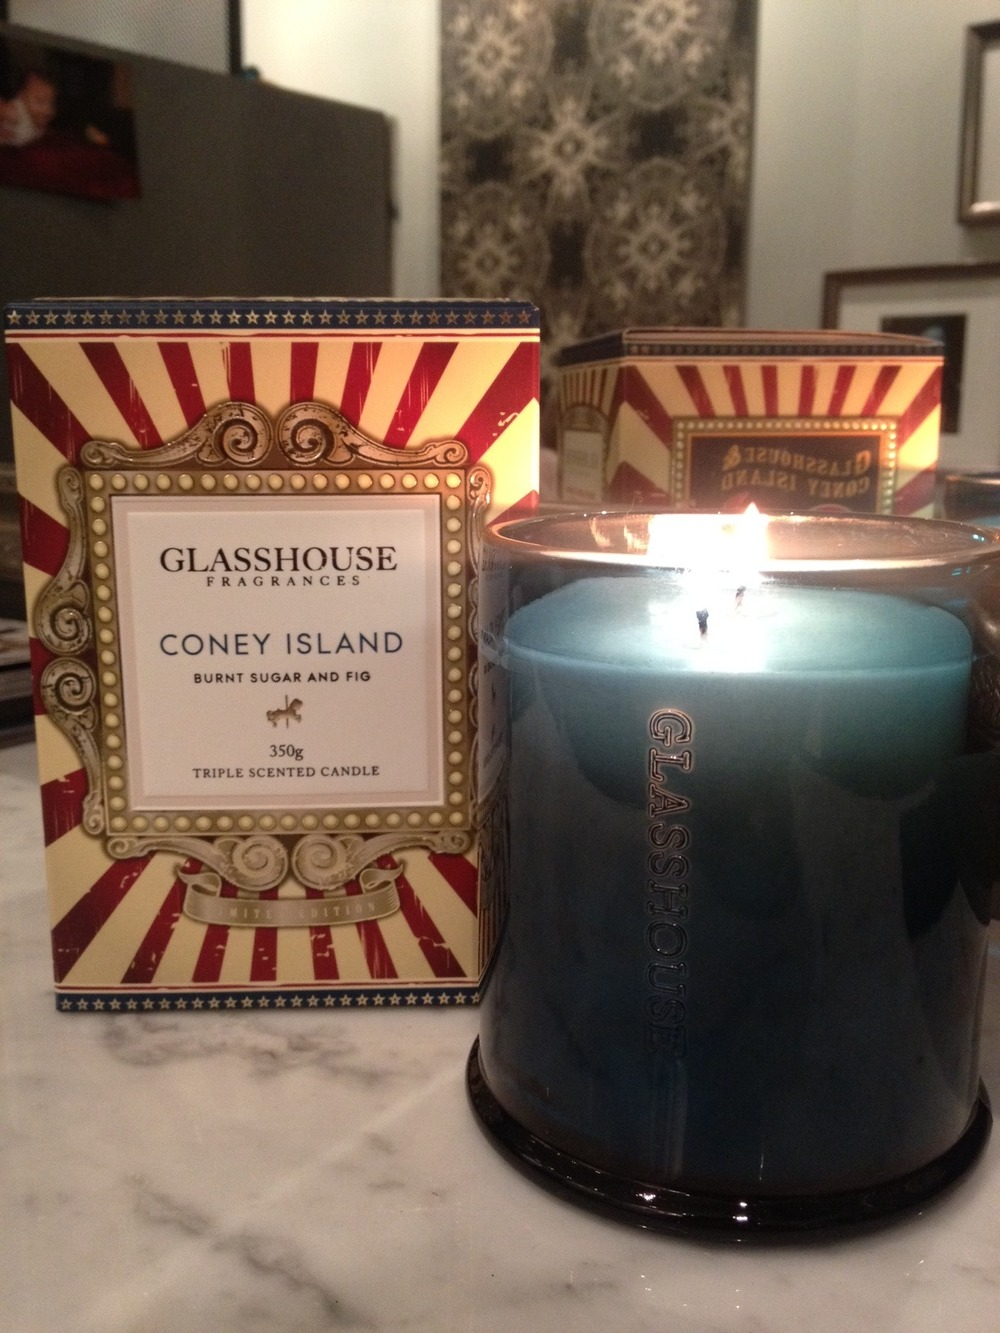 Check out the gorgeous new Glasshouse Candle scents next time you visit La Boutique! We are in love with the new limited edition 'Coney Island', with scents of burnt sugar and fig it adds a touch of yummy playfulness to the air! And of course you can't forget our old favourite 'Caracas', with a scent of frangipani.